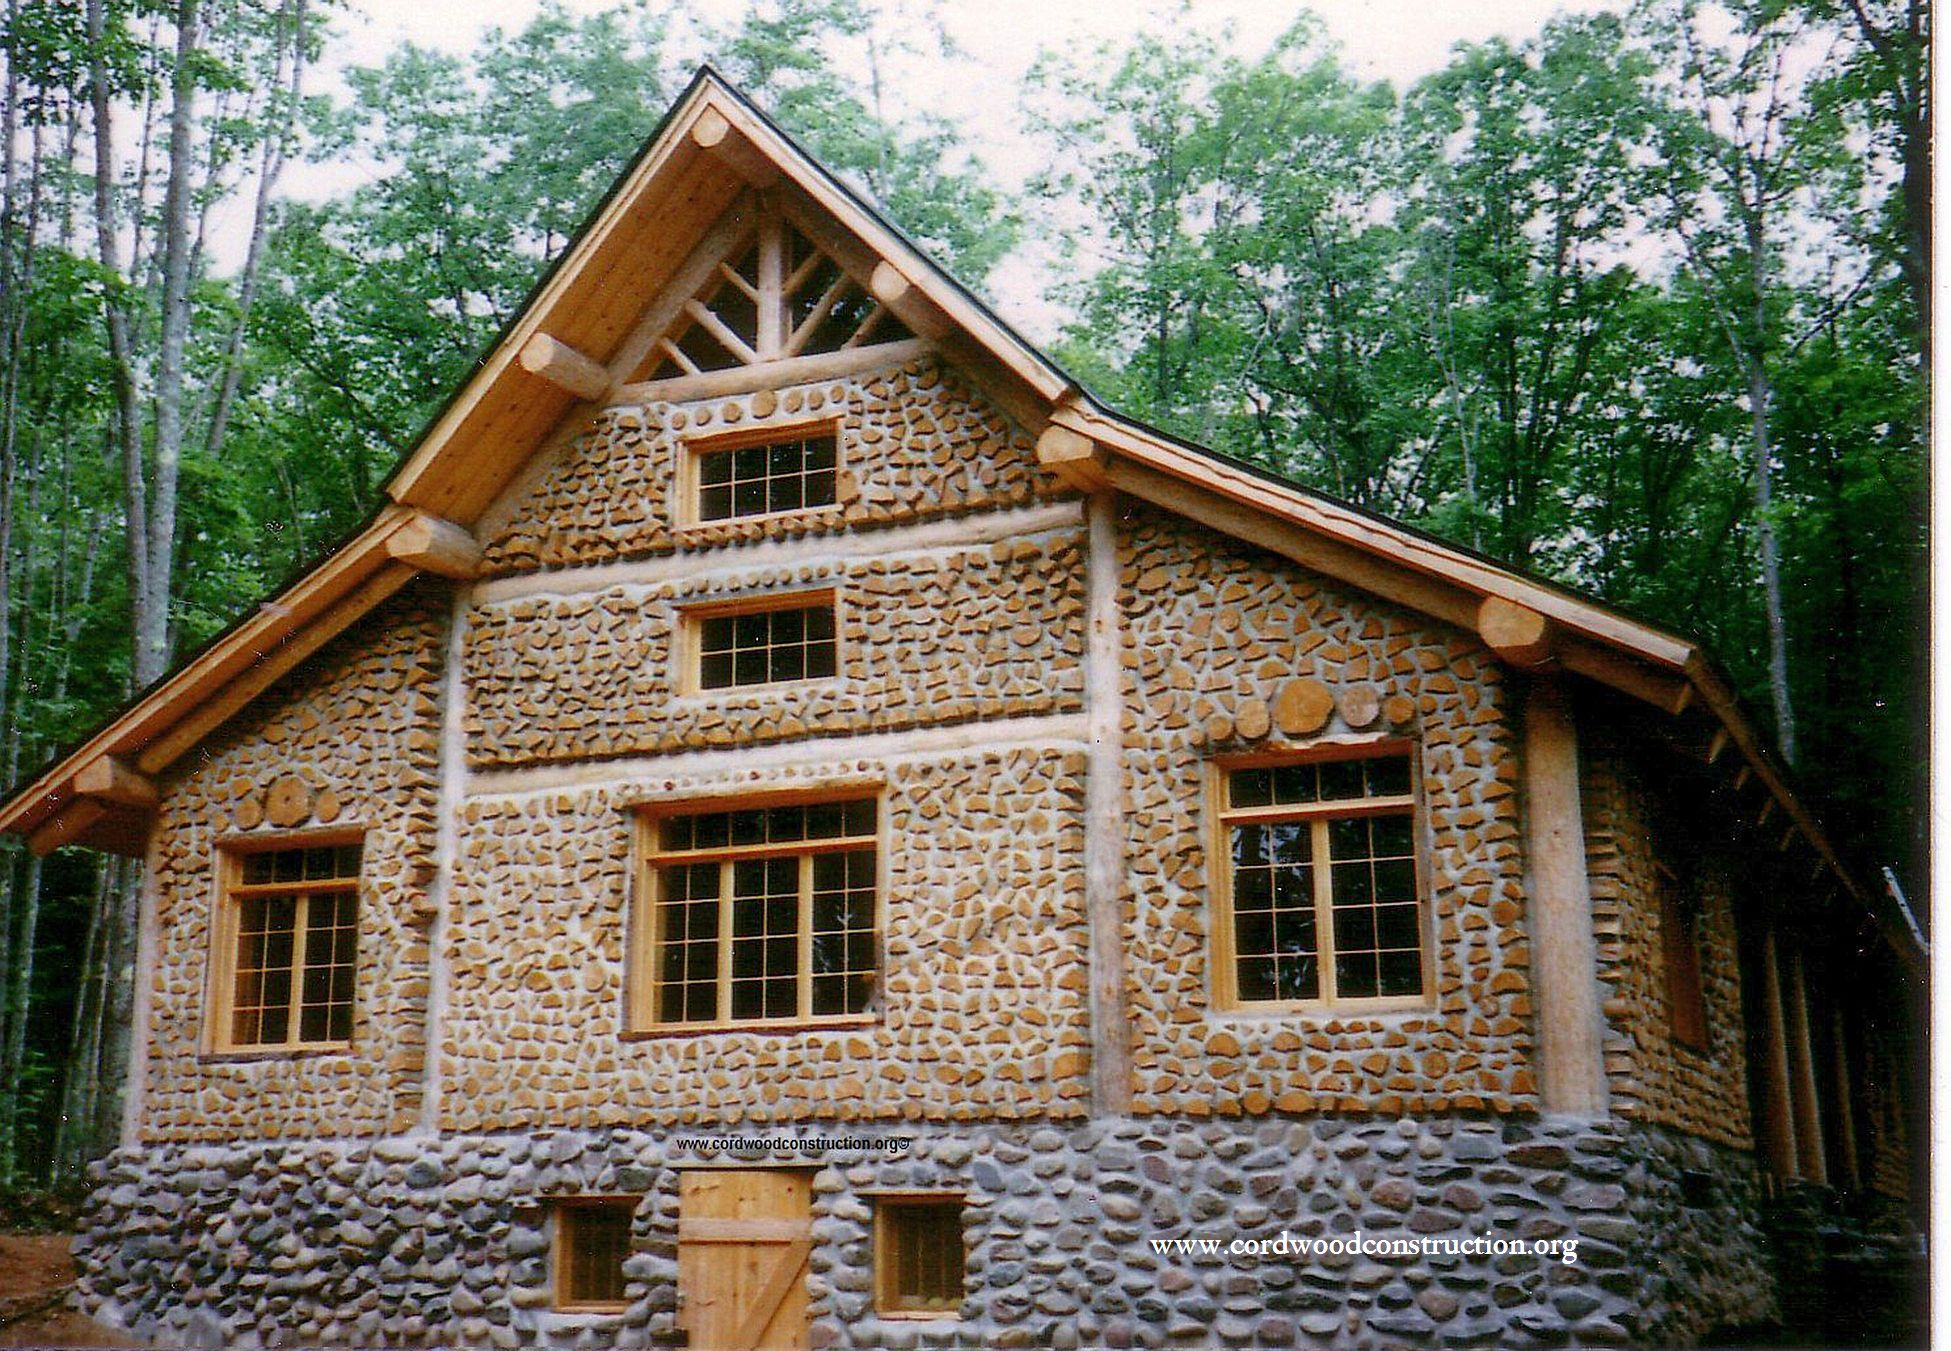 Cordwood_Lodge_northern_Wisconsin_photo_by_Richard_Flatau_300ppi small pixels